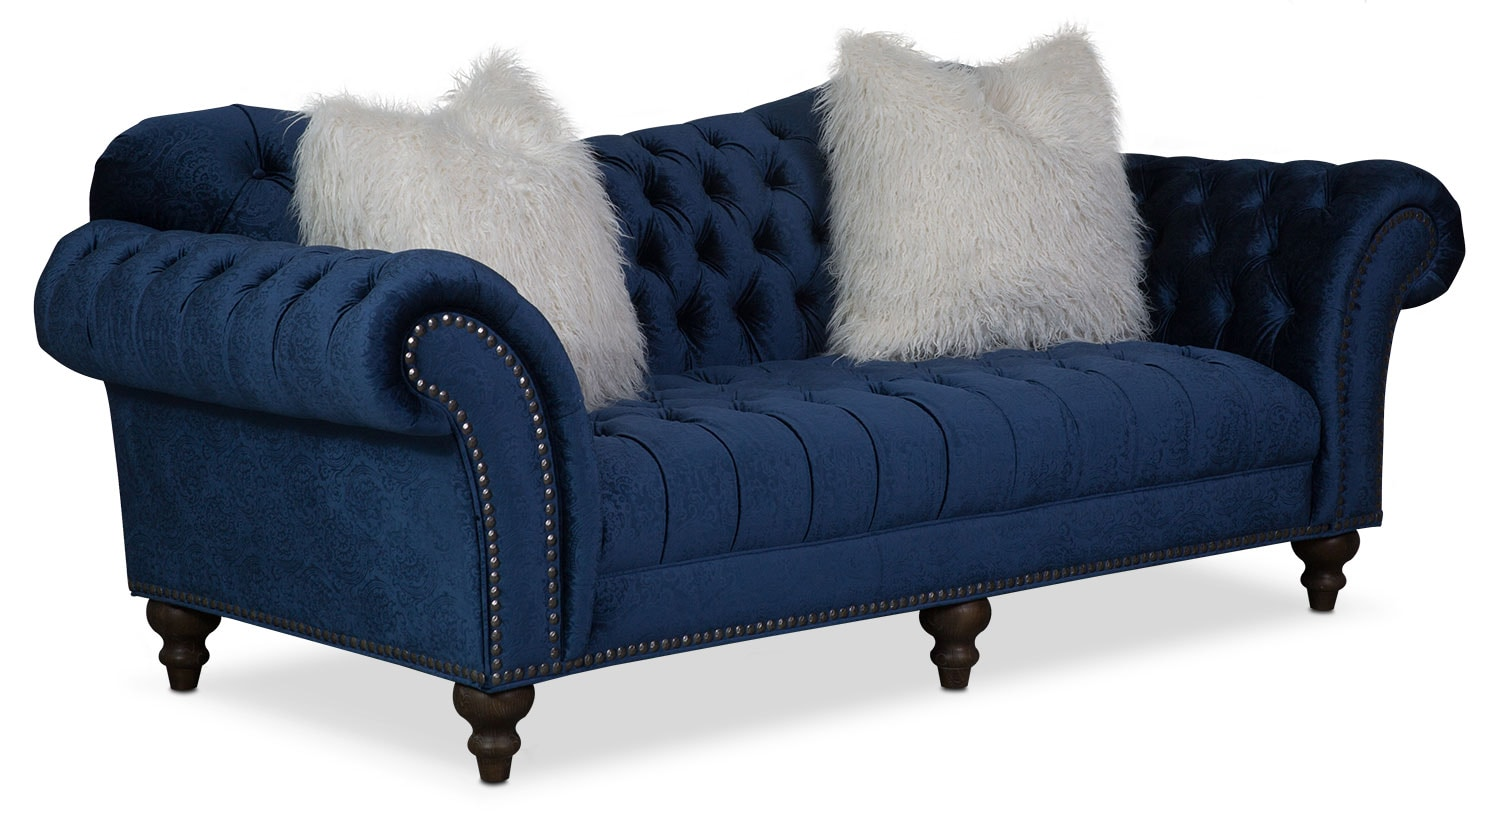 Living Room Furniture - Brittney Sofa - Navy